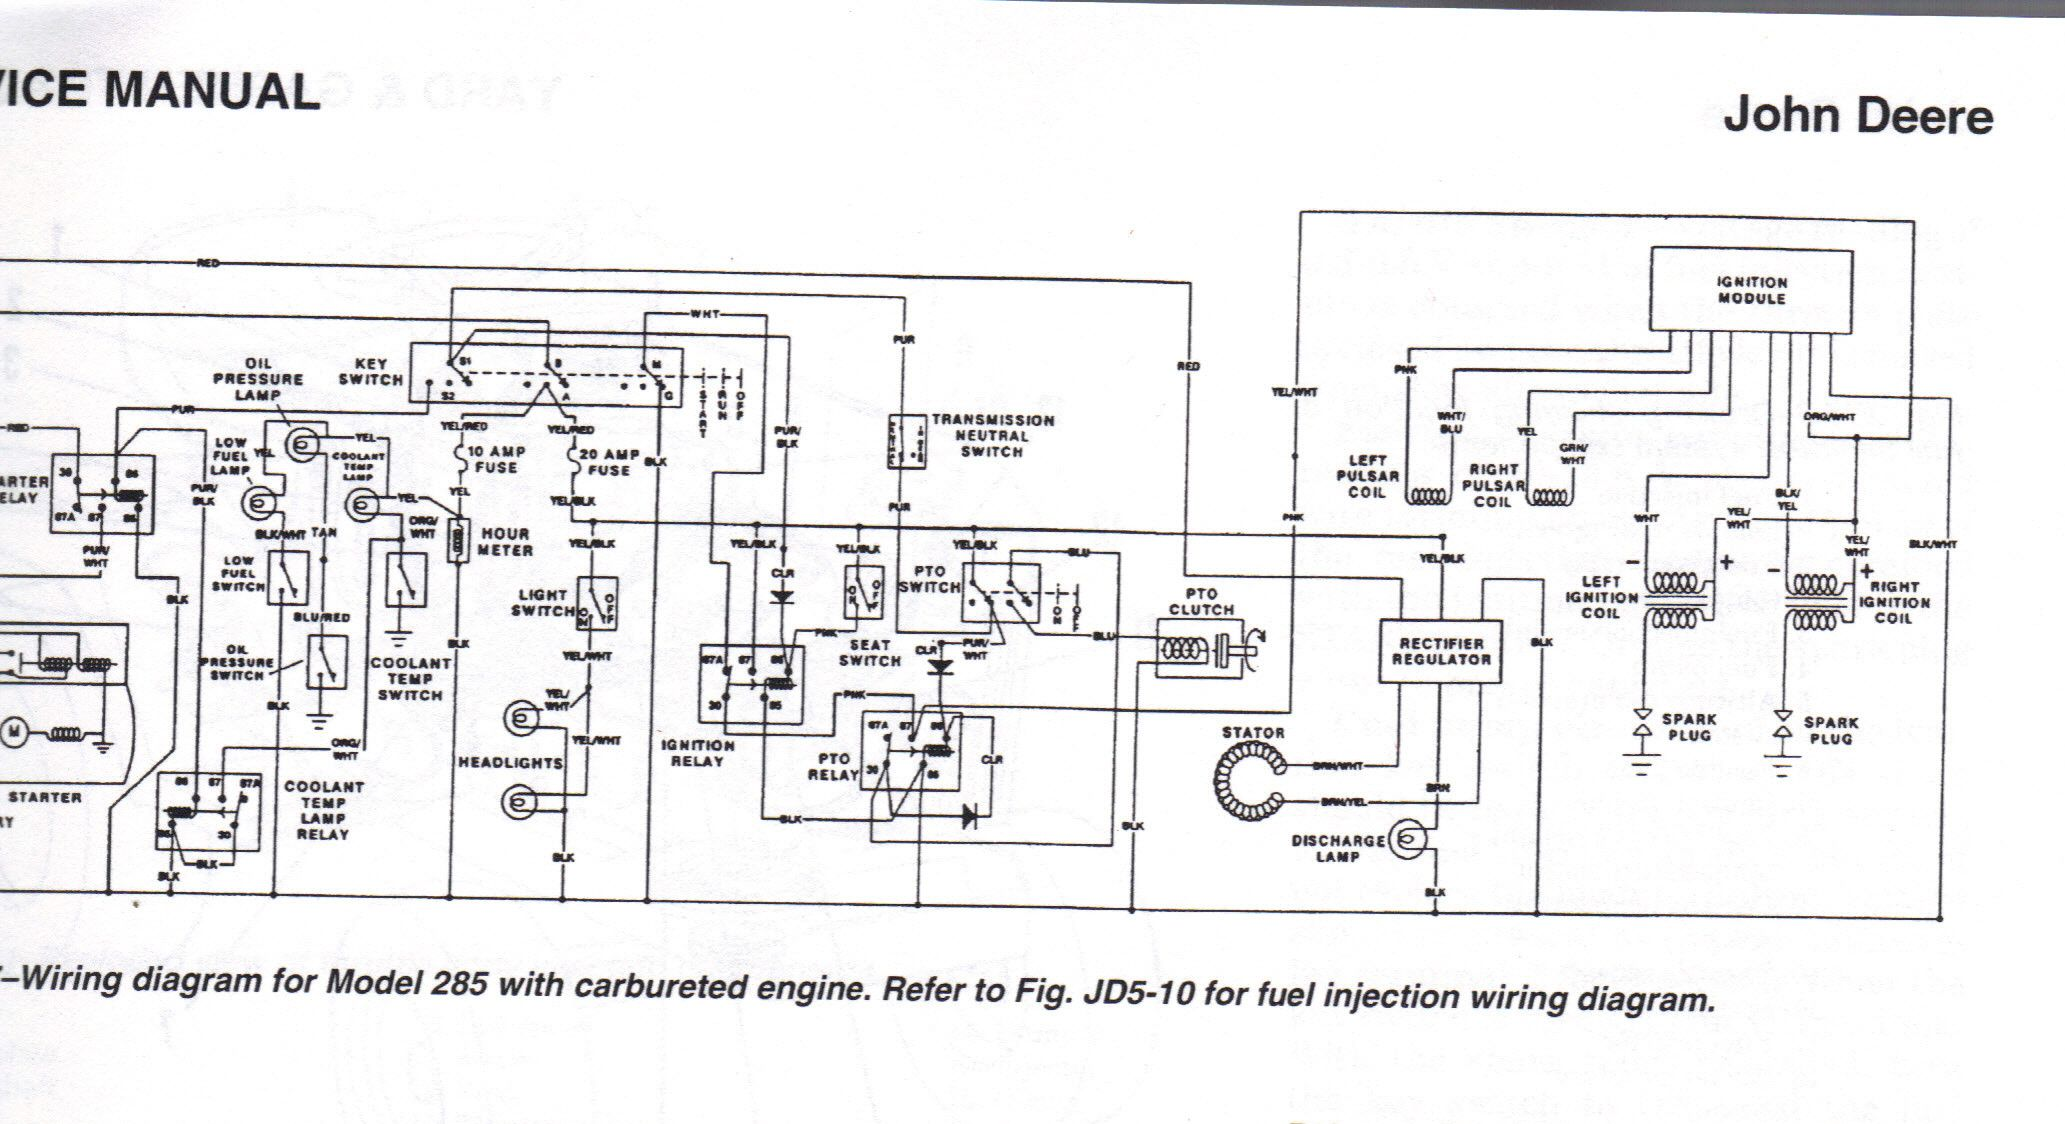 john deere wiring diagram to service manual for model 285 with rh rh in pinterest com john deere gator ts 4x2 wiring diagram john deere gator 4x2 ignition wiring diagram